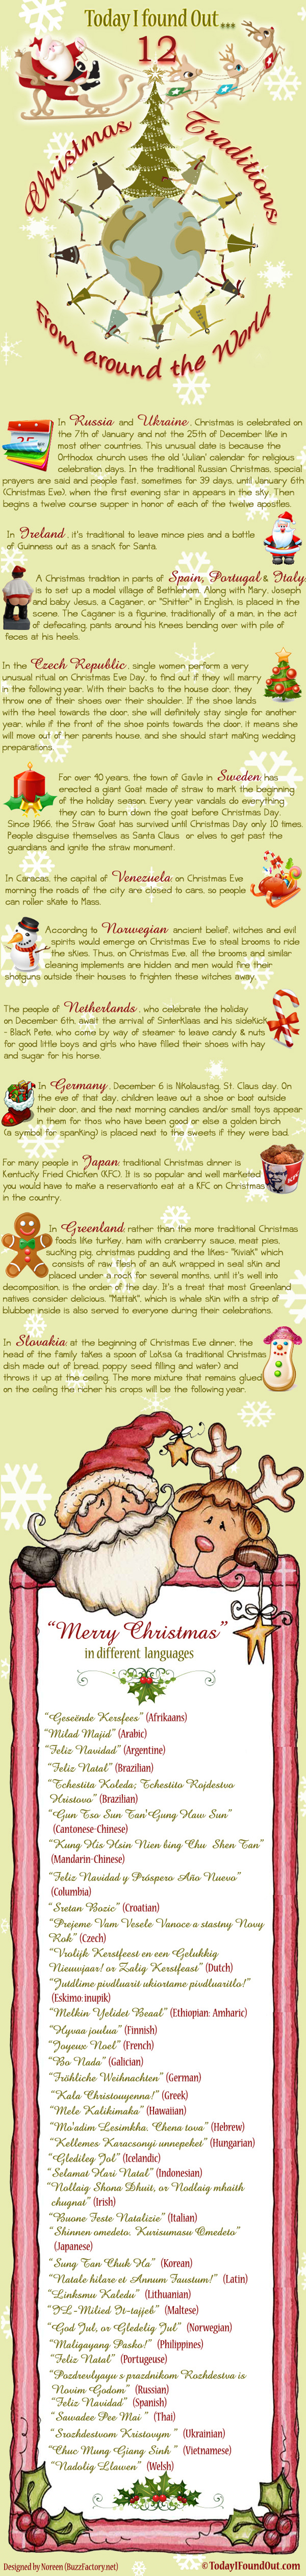 Christmas Traditions From Around The World – Infographic